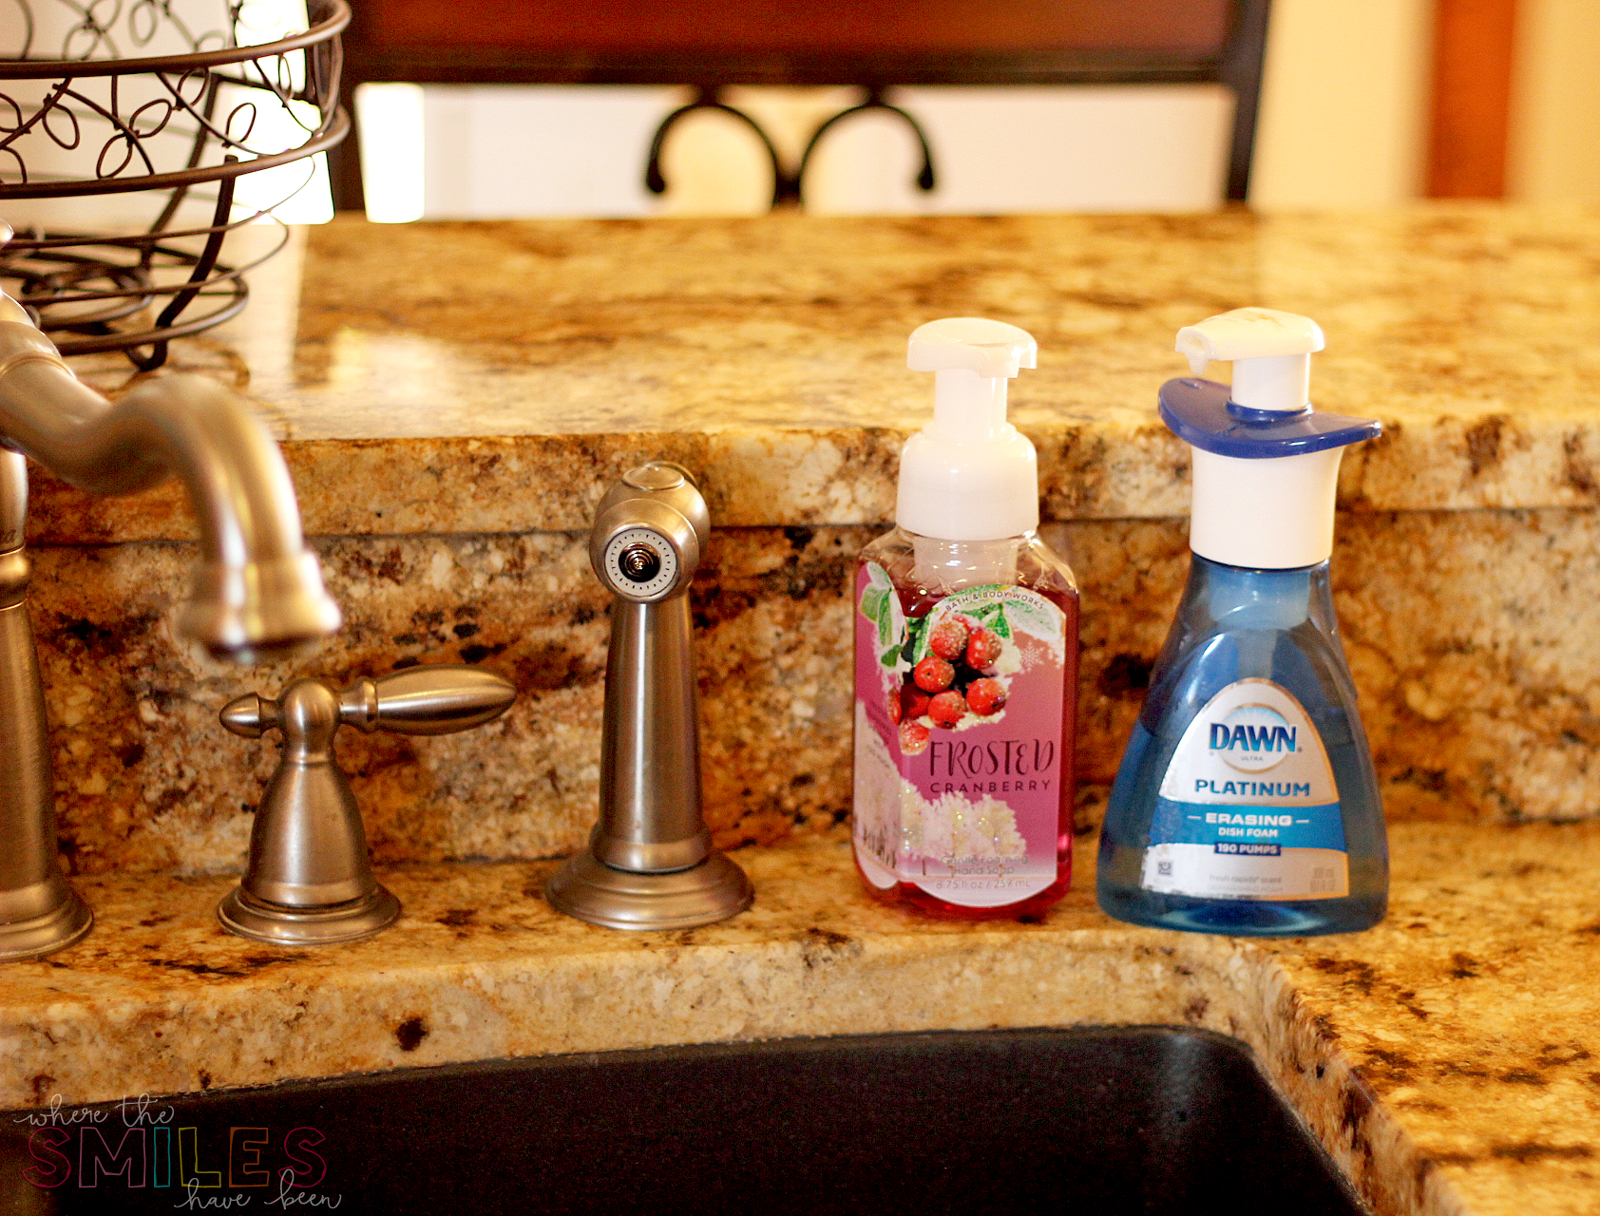 Ugly store-bough hand and dish soap bottles near kitchen sink